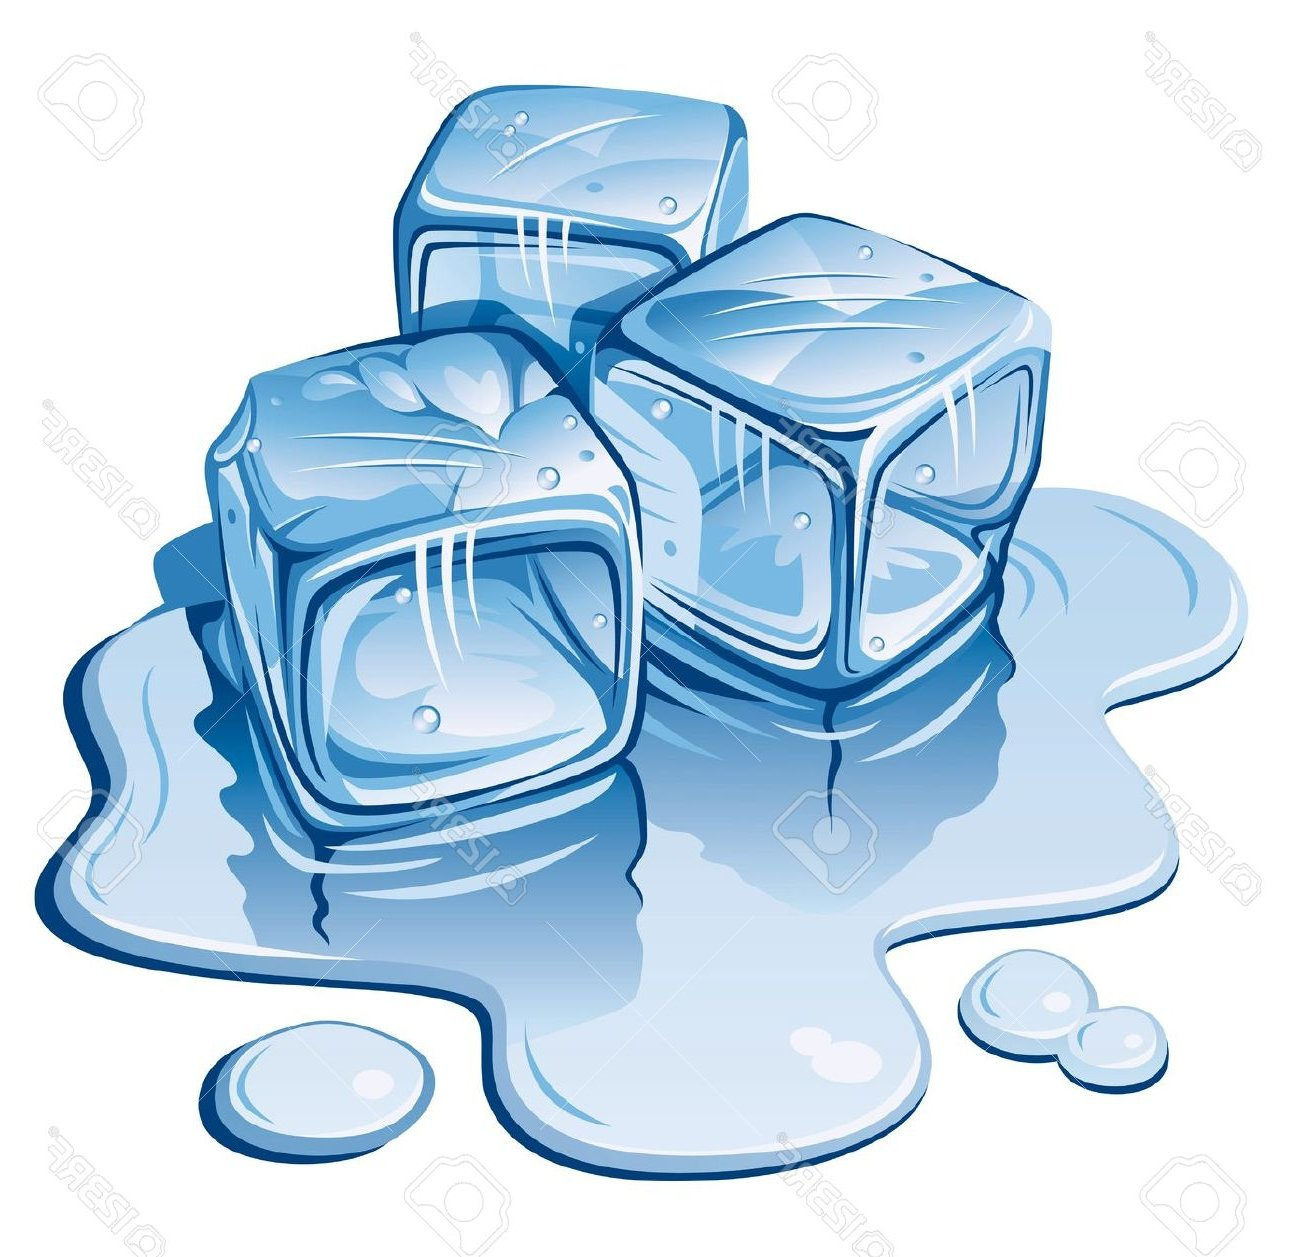 Ice clipart.  collection of solid